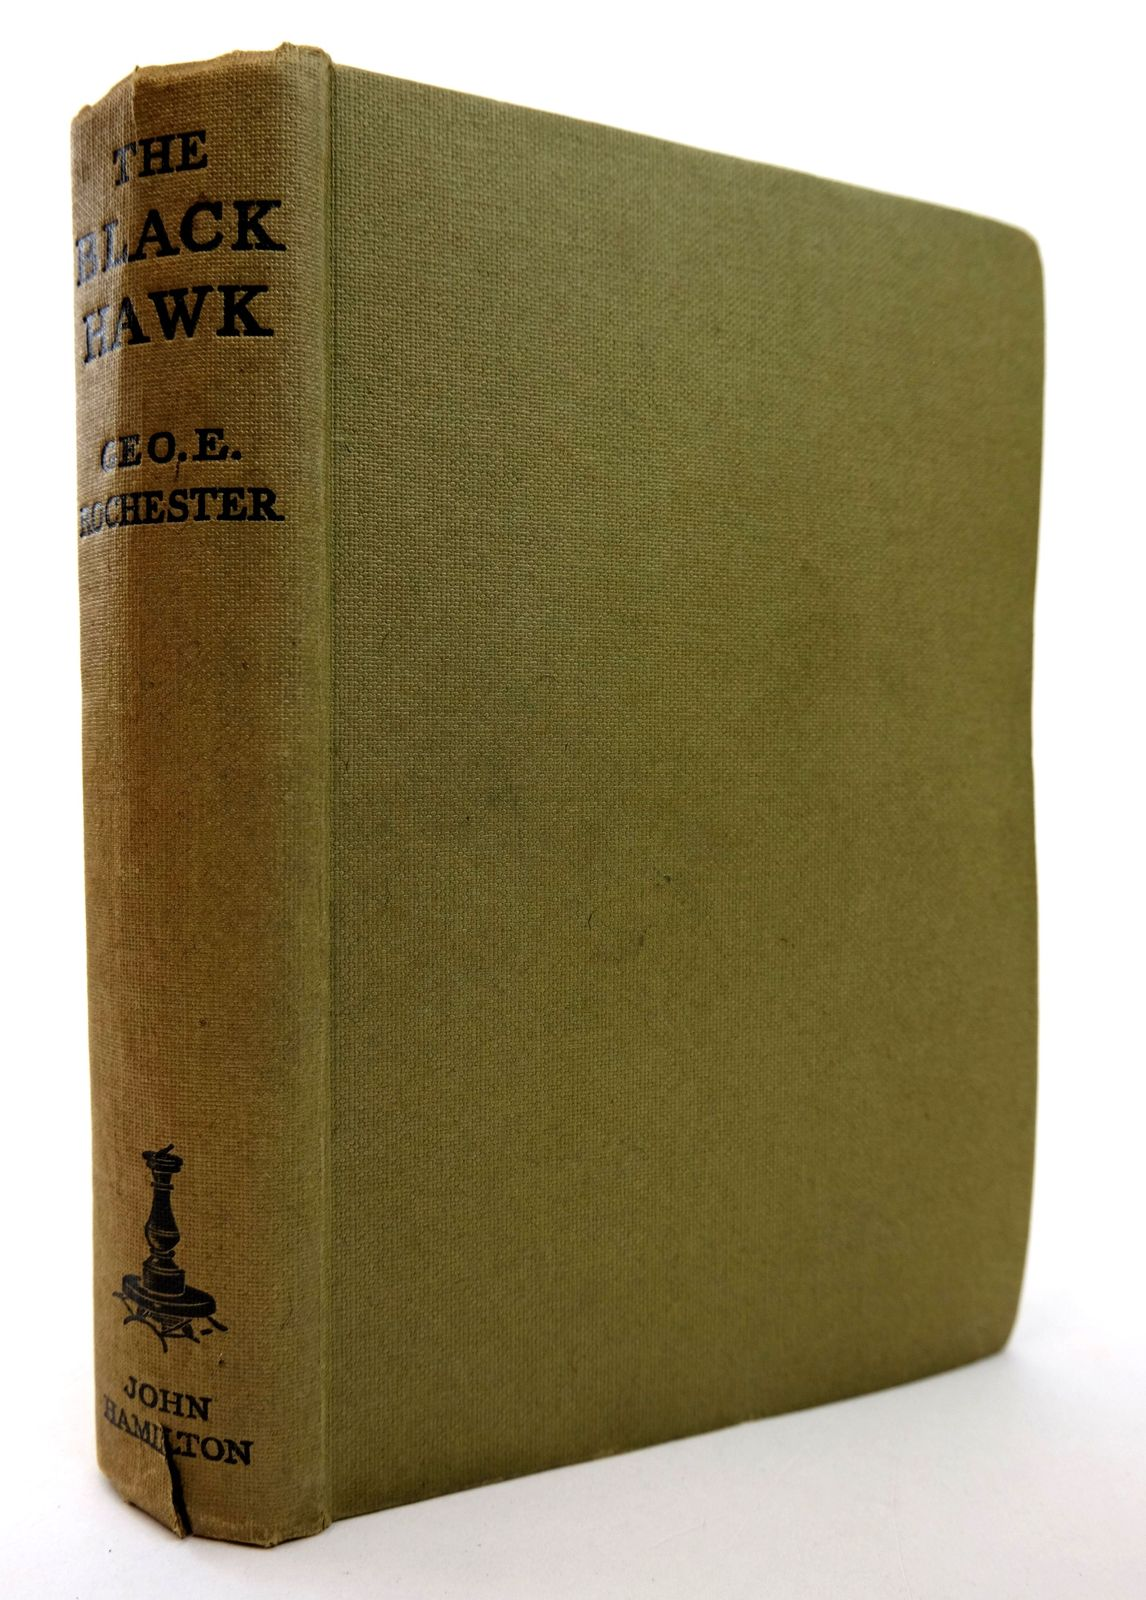 Photo of THE BLACK HAWK written by Rochester, George E. published by John Hamilton Ltd. (STOCK CODE: 1818823)  for sale by Stella & Rose's Books